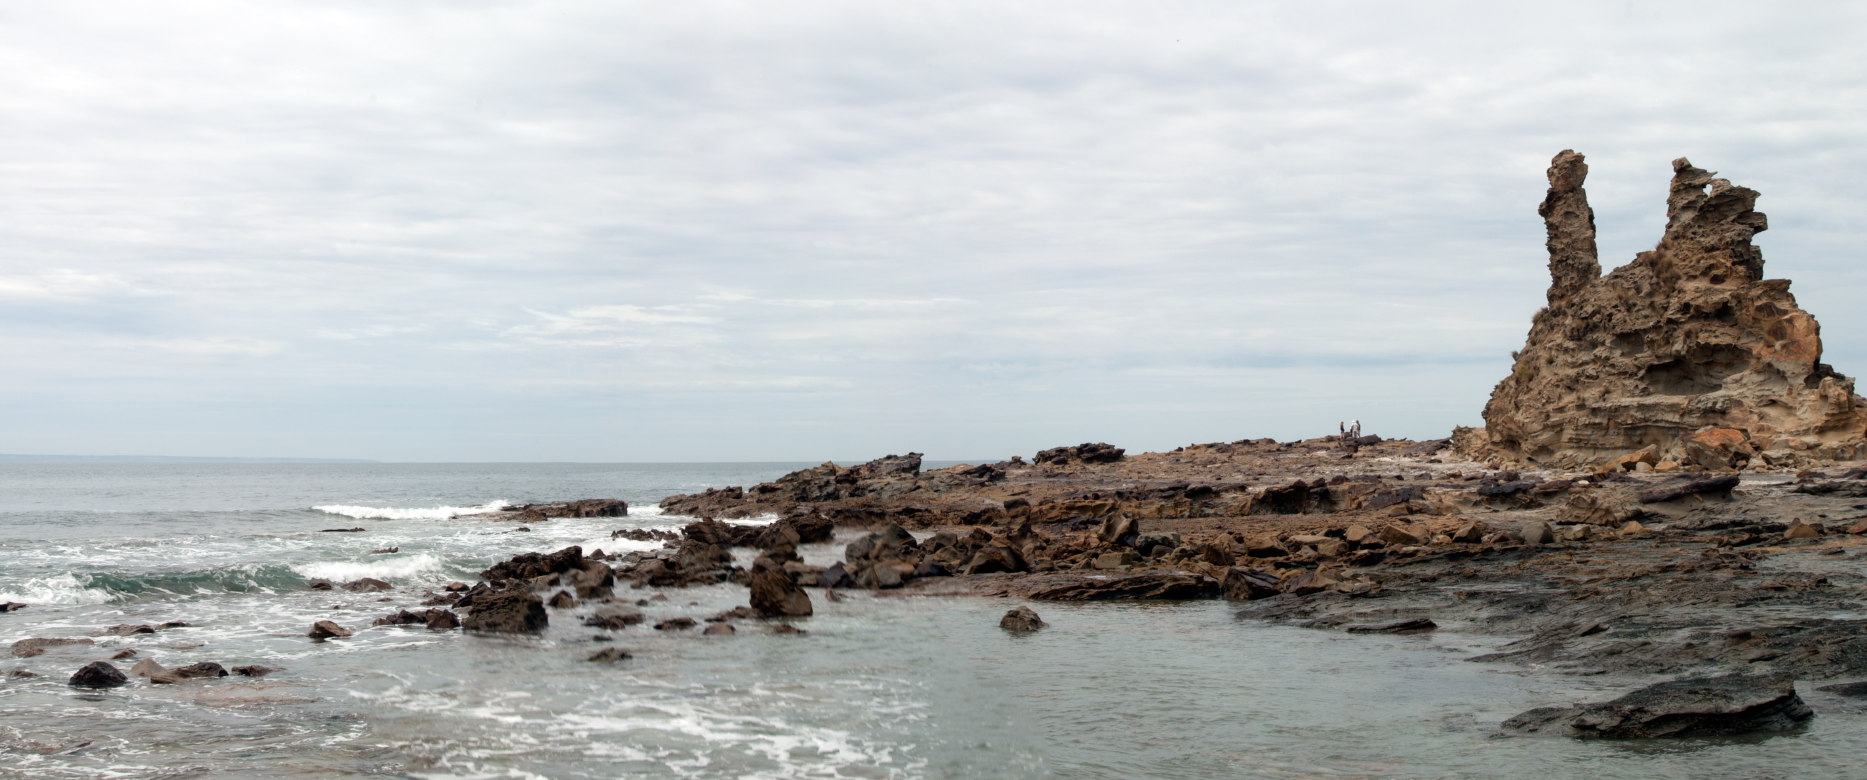 Eagle Nest Rock - 06 - Inverloch Vic.